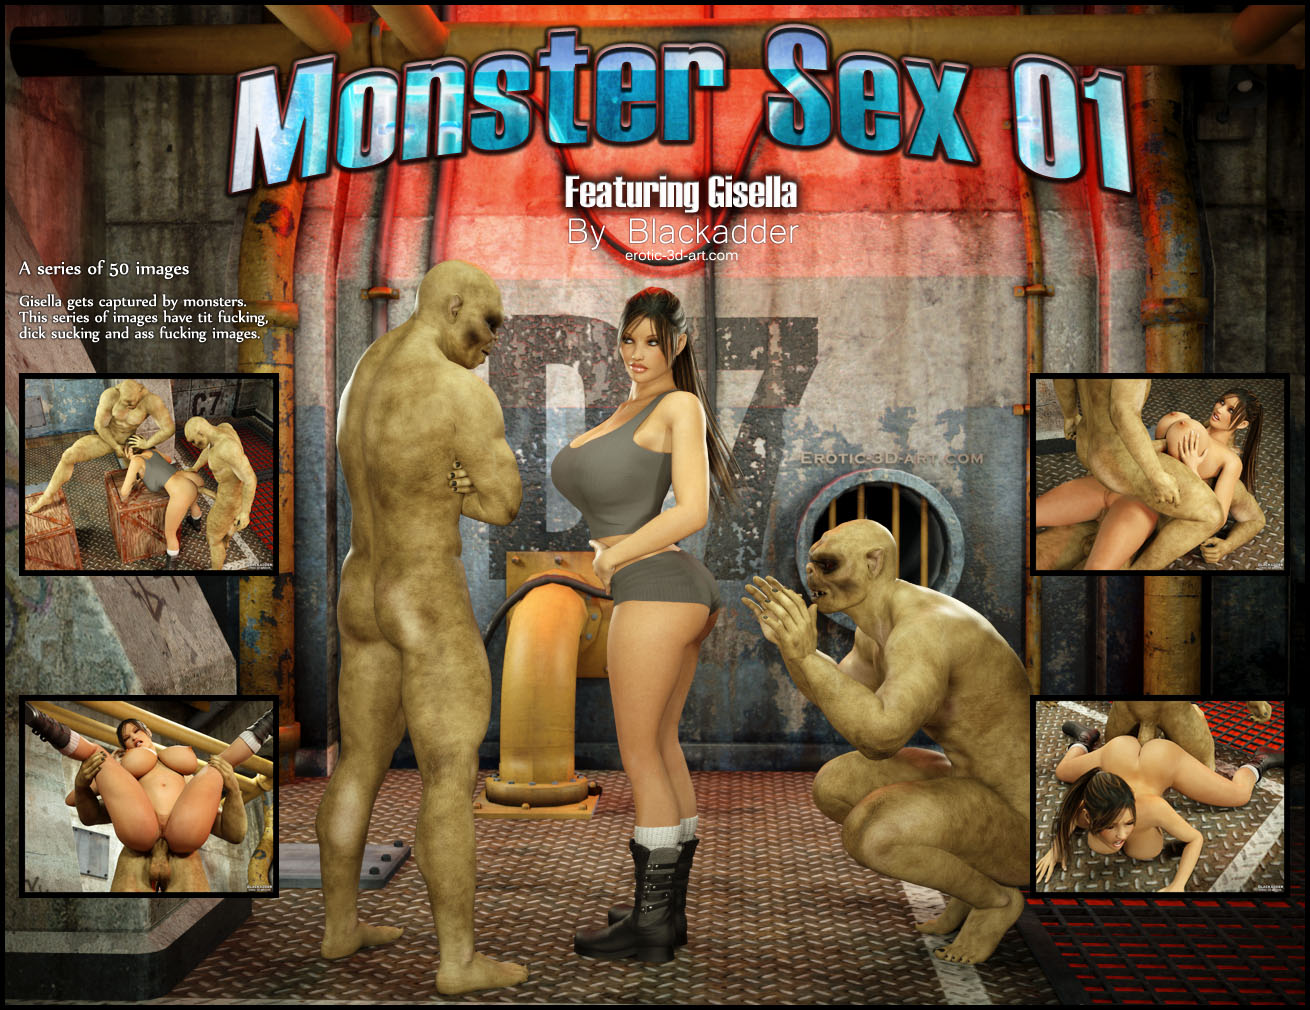 Cartoon monster sexy video downloadings cartoon scene